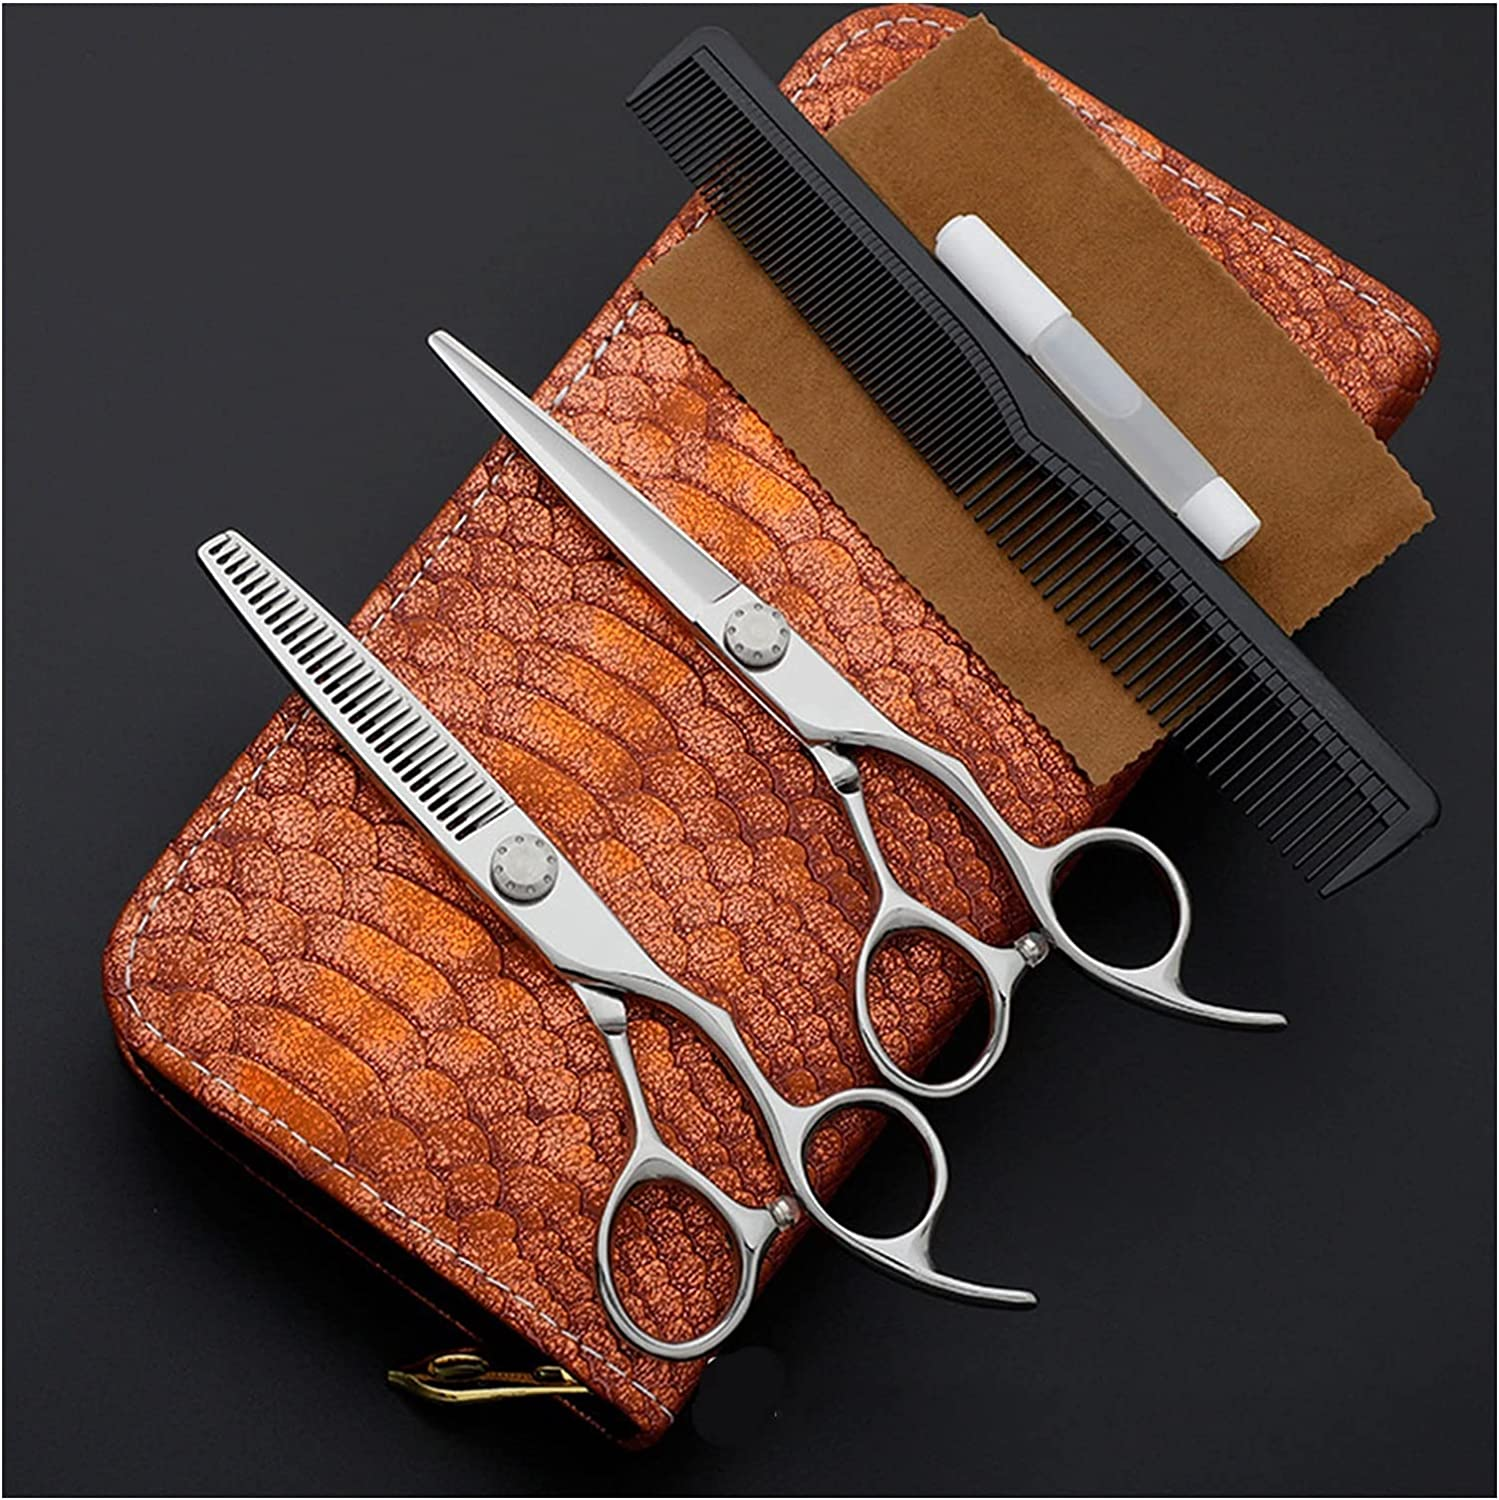 Hair Cutting Scissors, Soldering 6.0 Set Animer and price revision Inch Tool Hand-Sh